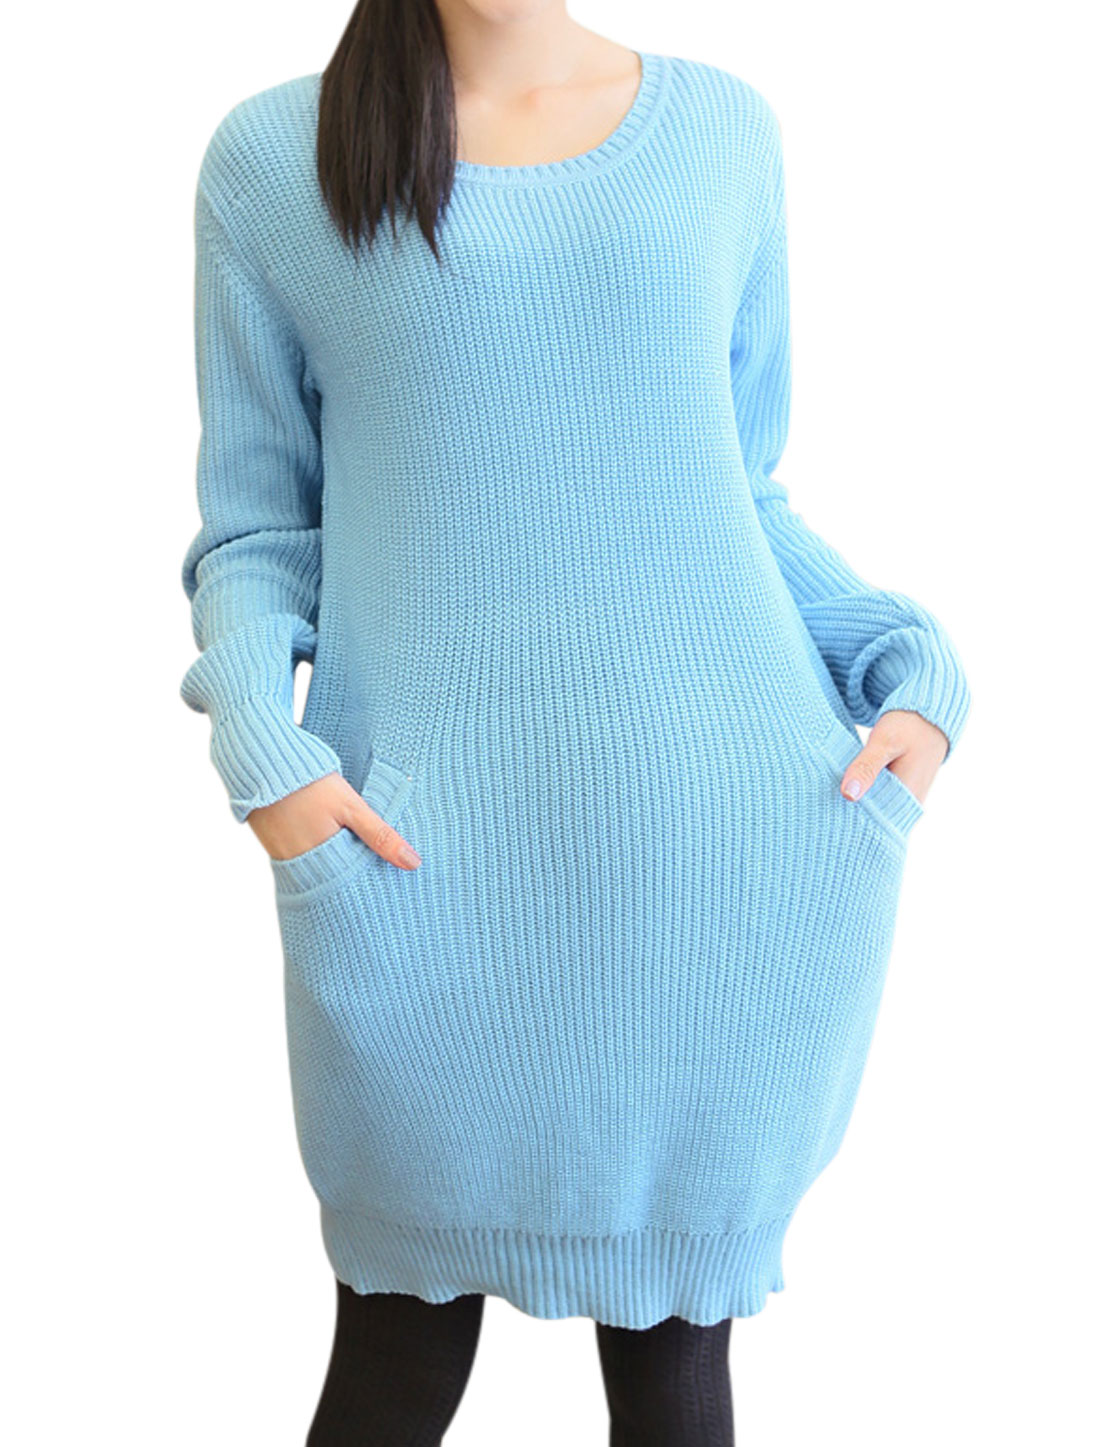 Slipover Fashion Round Neck Tunic Sweater for Maternity Baby Blue S